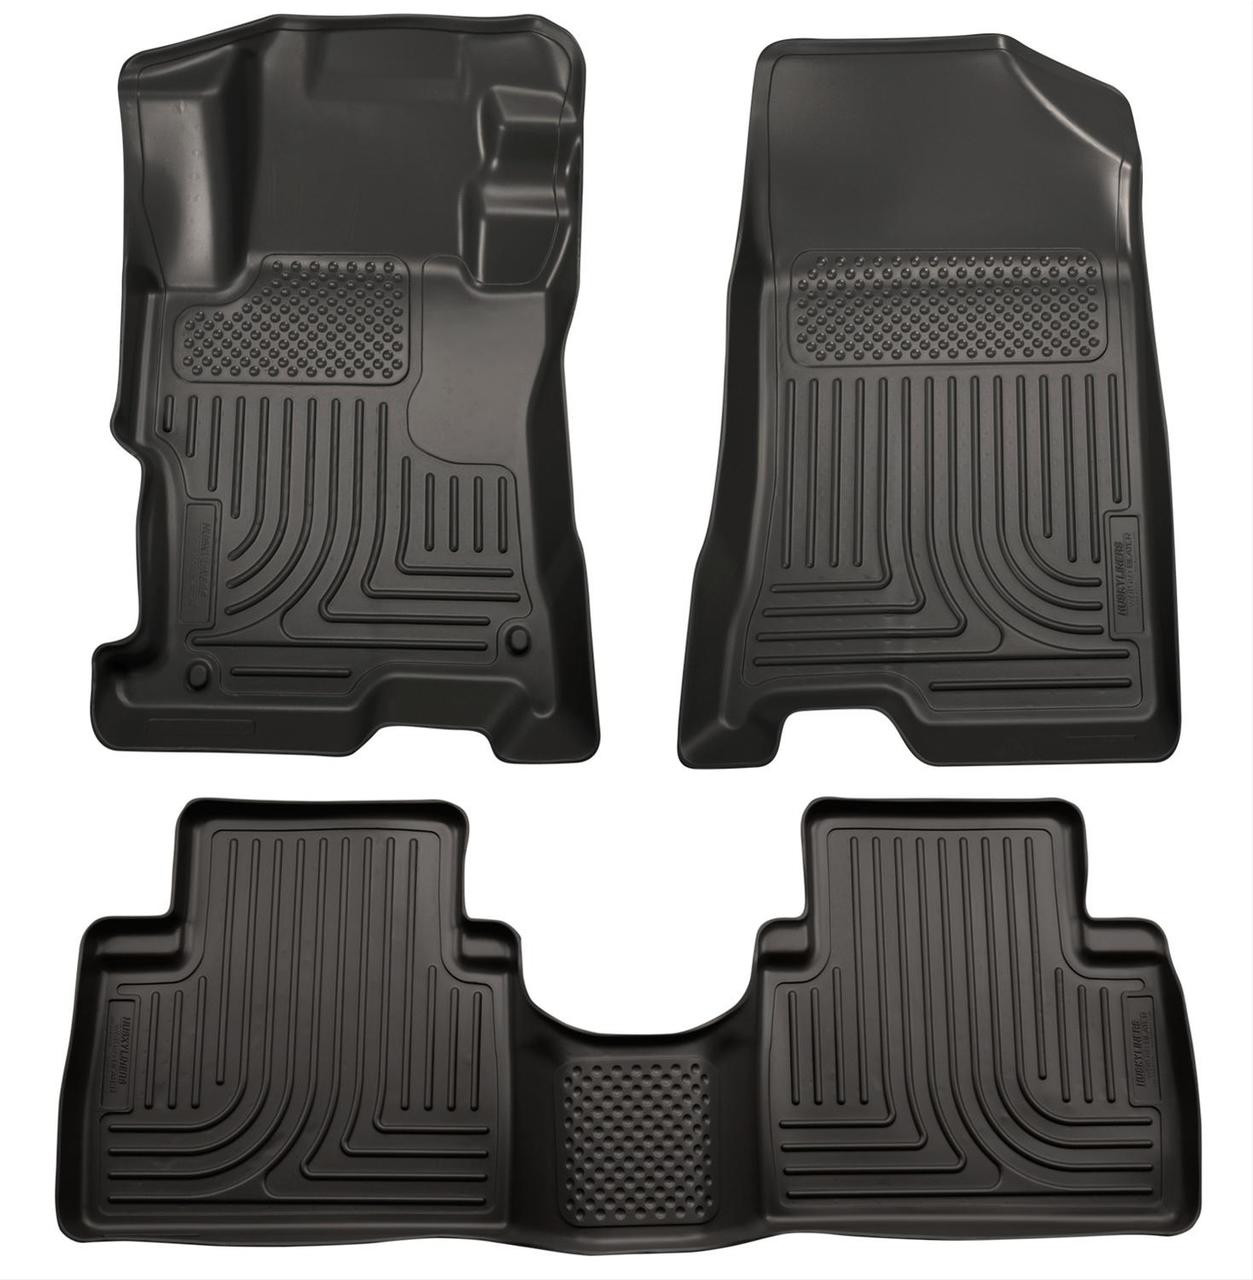 08-12 ACCORD 4-DOOR FRONT AND SECOND SEAT LINER BLACK